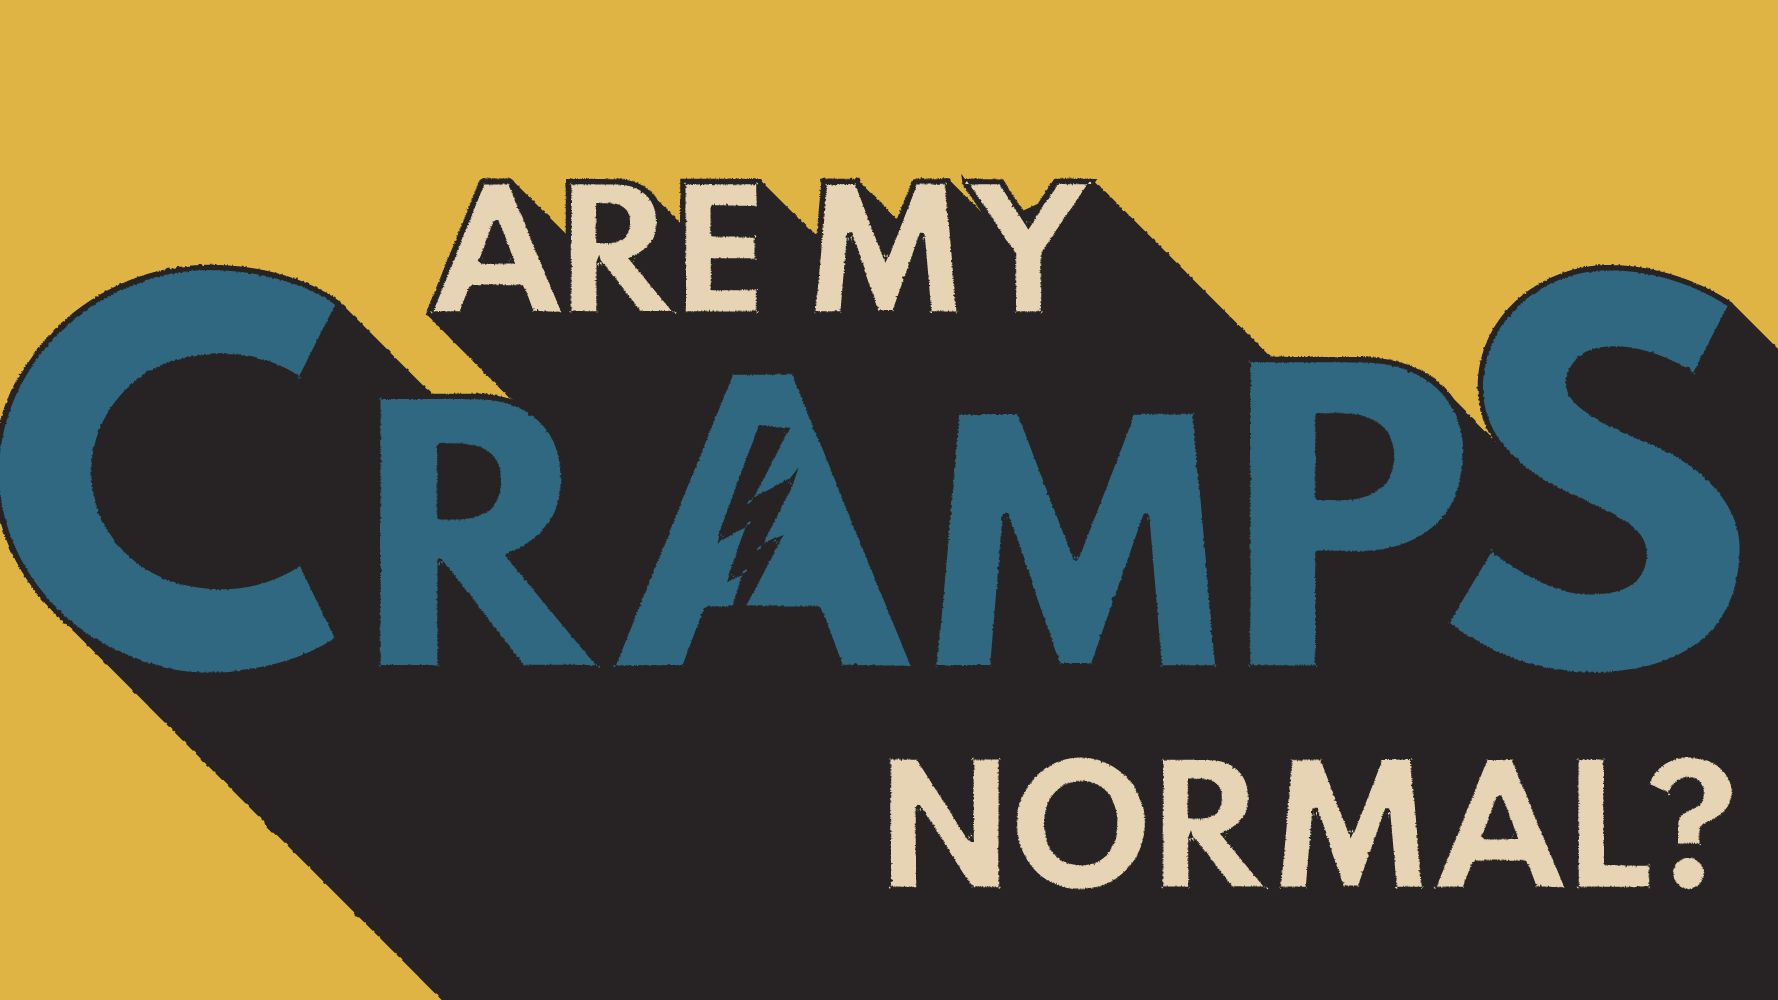 Is It Normal To Cramp After Sex? | HuffPost Life